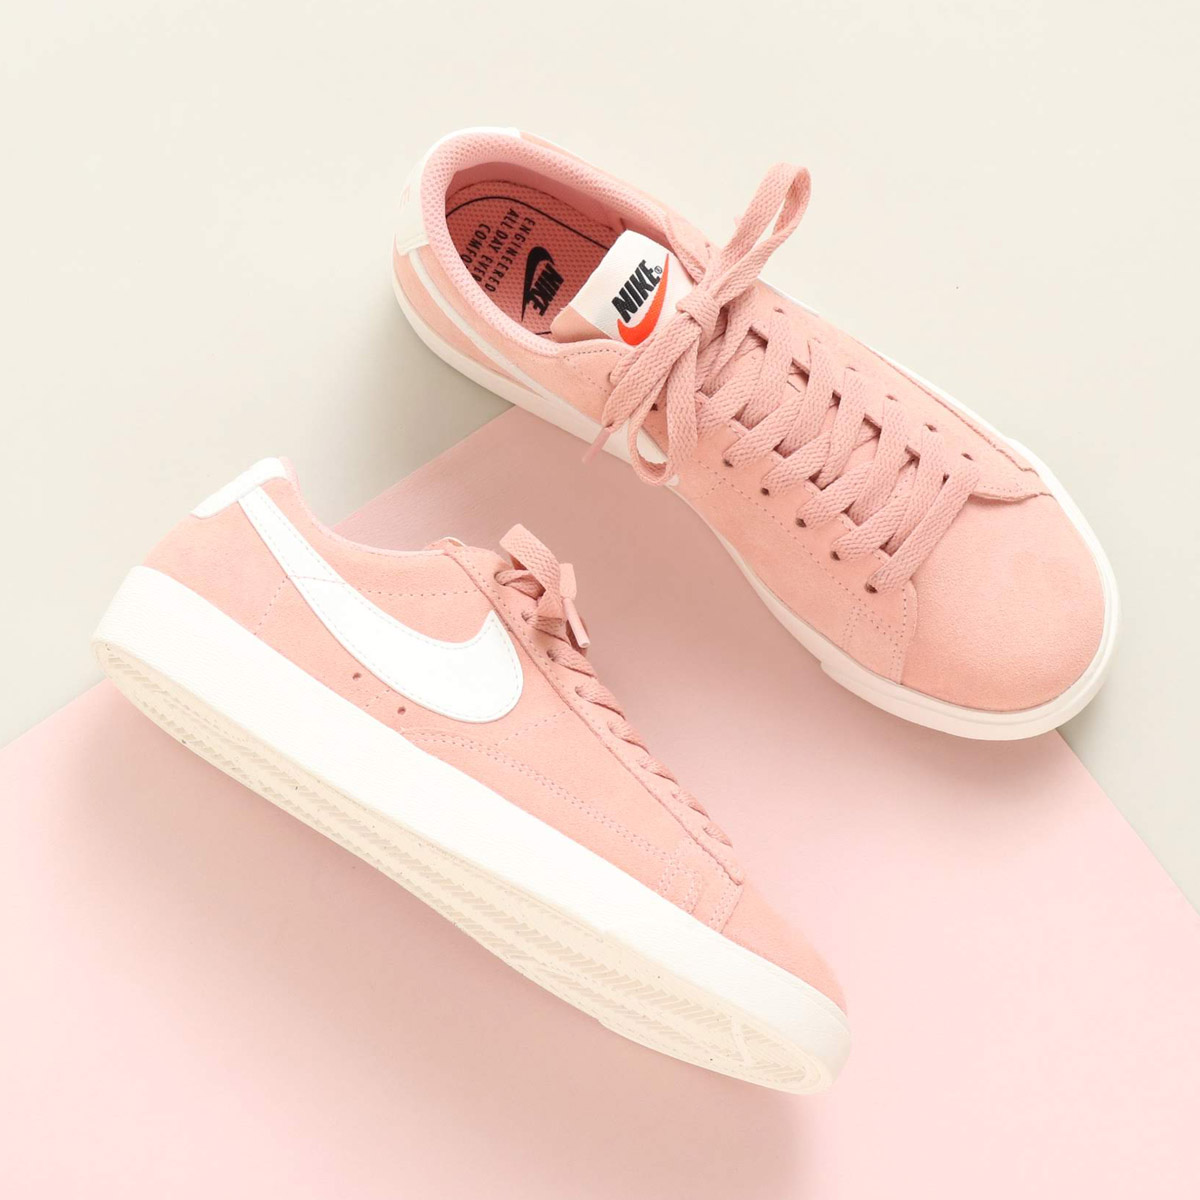 premium selection 24c60 24f4b As for the inspire done Nike women blazer low, the suede upper provides a  feeling of premium fitting using autoclave structure for basketball.